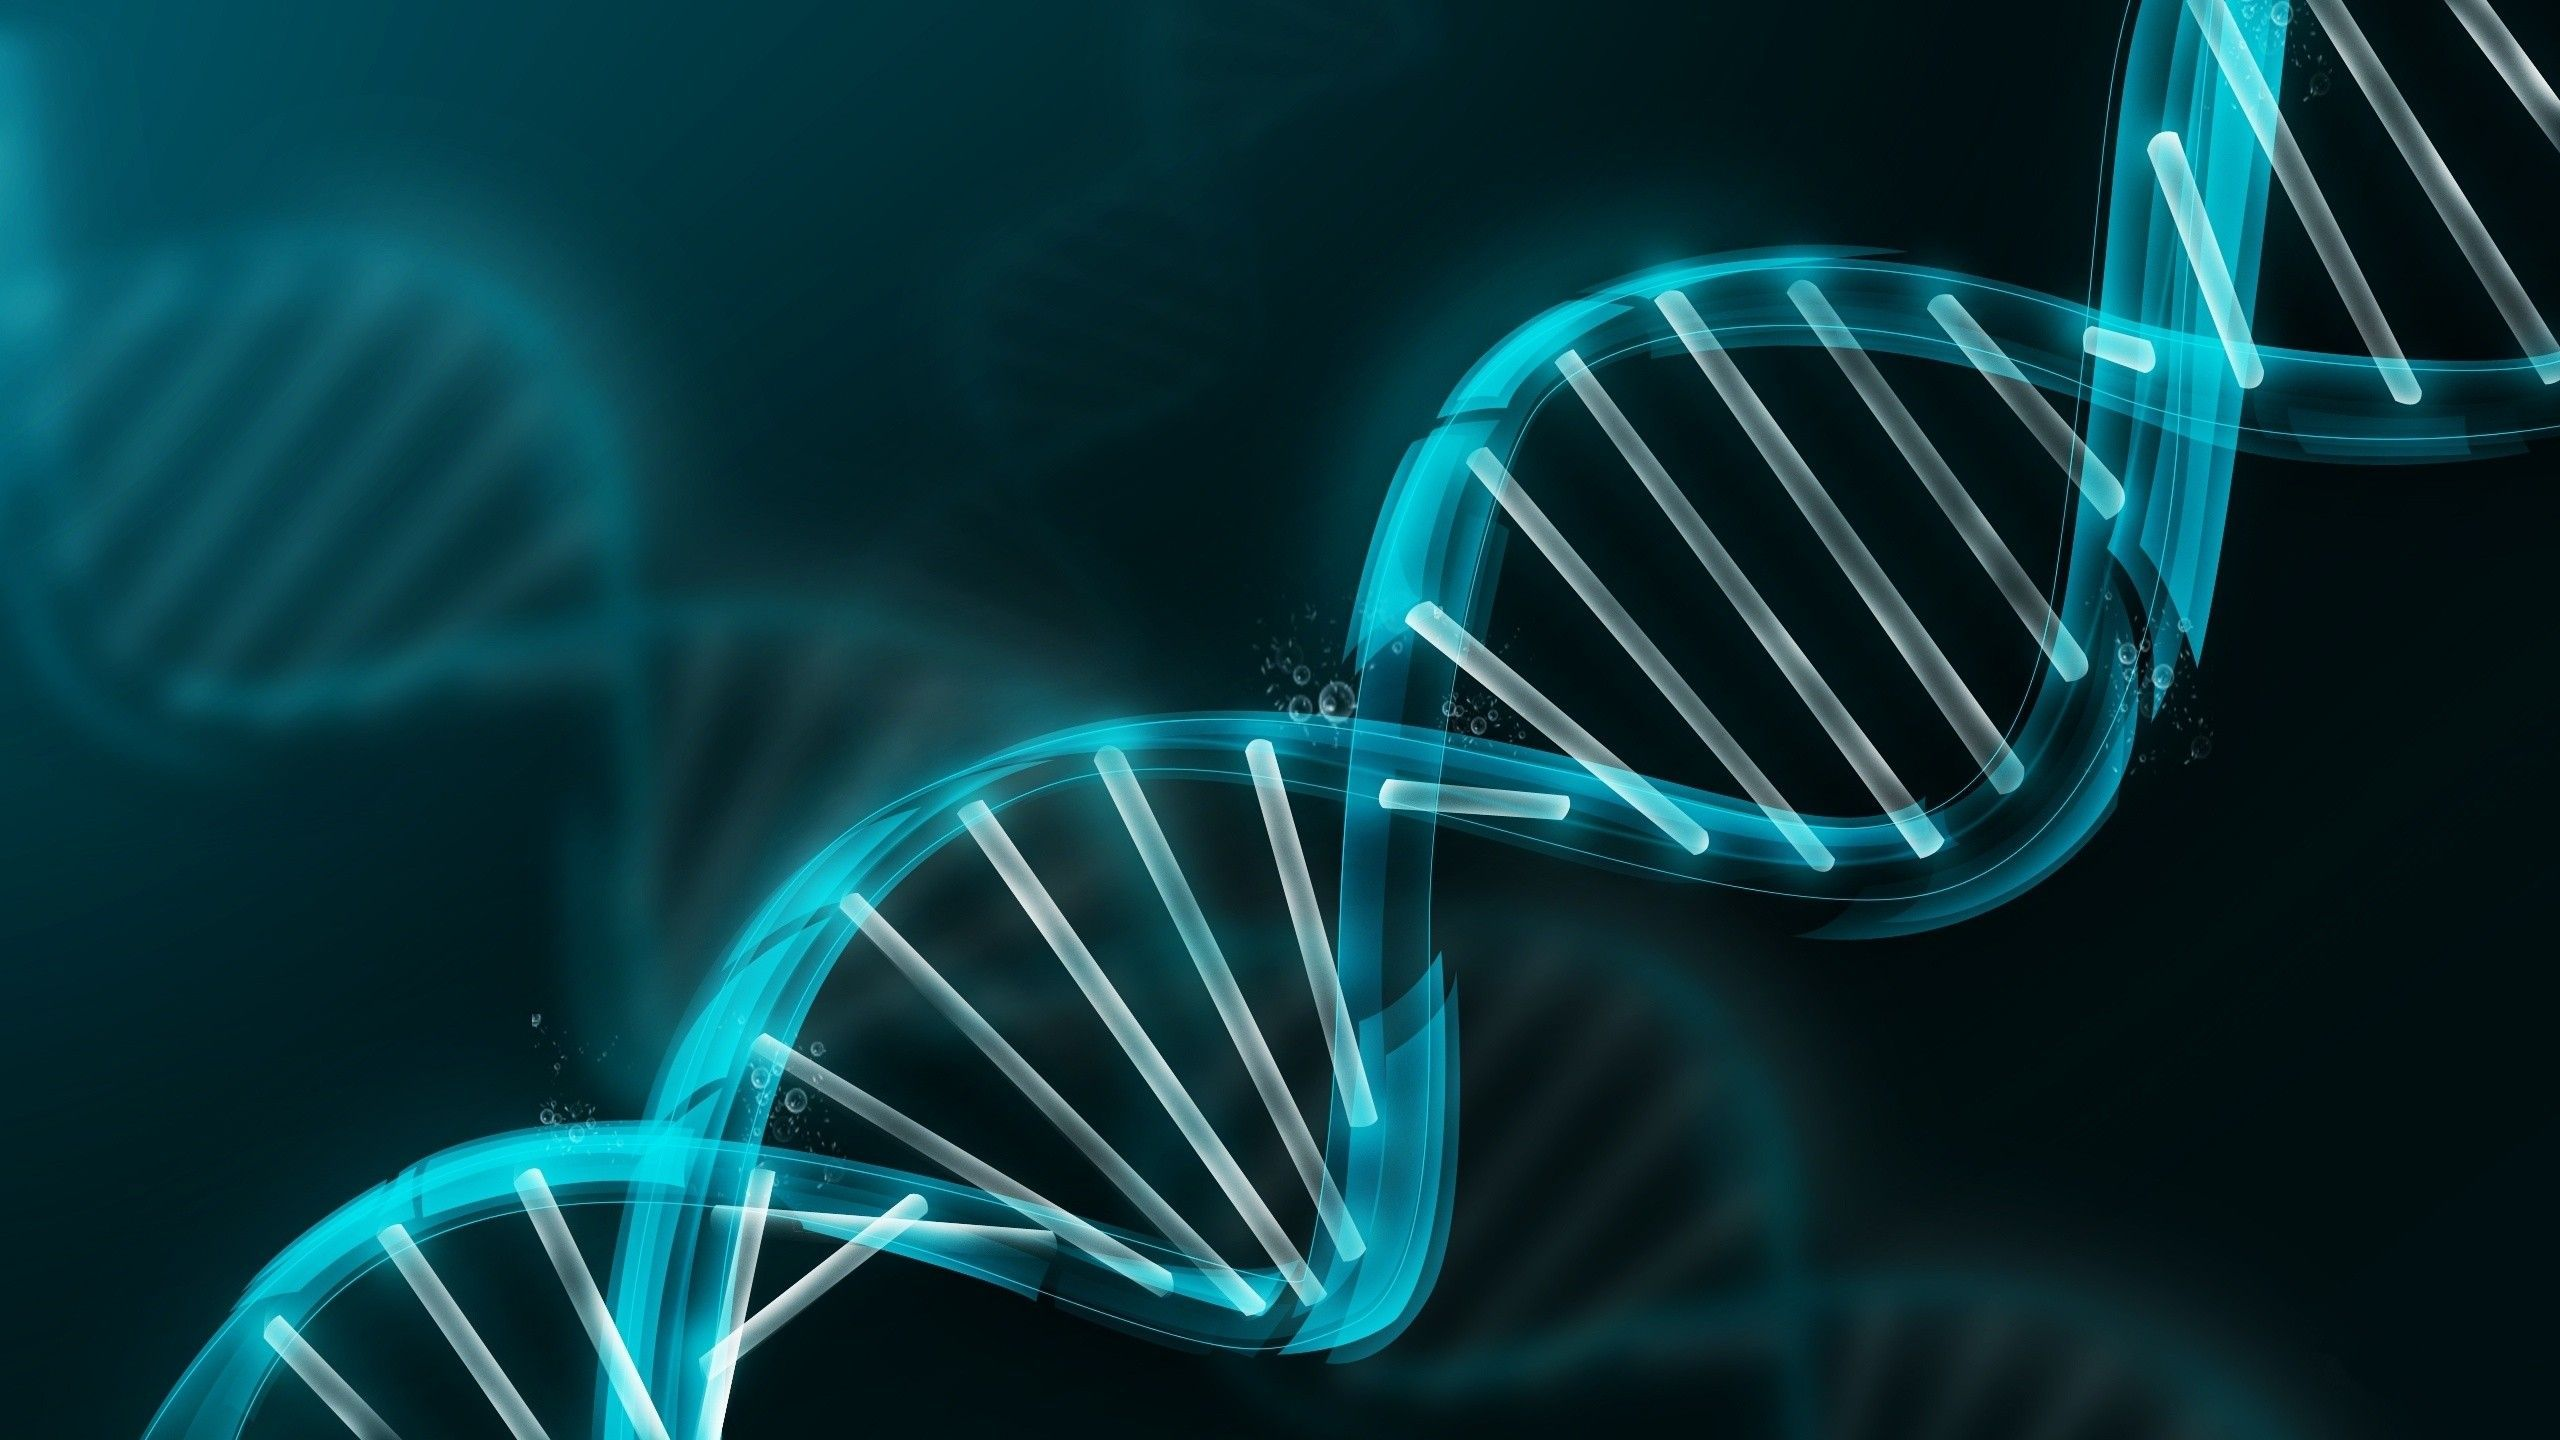 DNA Double Helix HD Wallpapers Bing images Cientistas